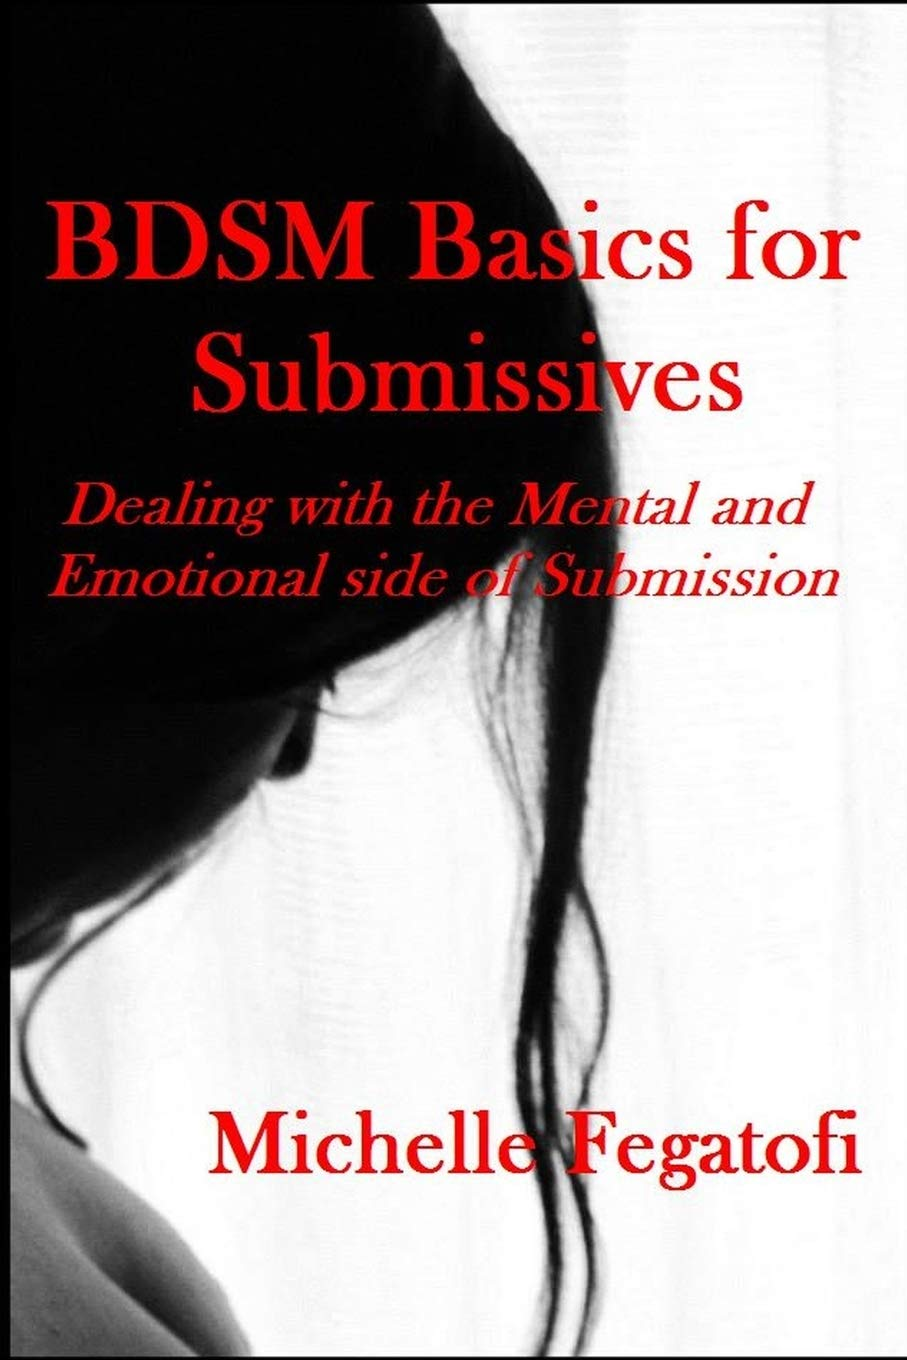 Image OfBdsm Basics For Submissives - Dealing With The Mental And Emotional Side Of Submission